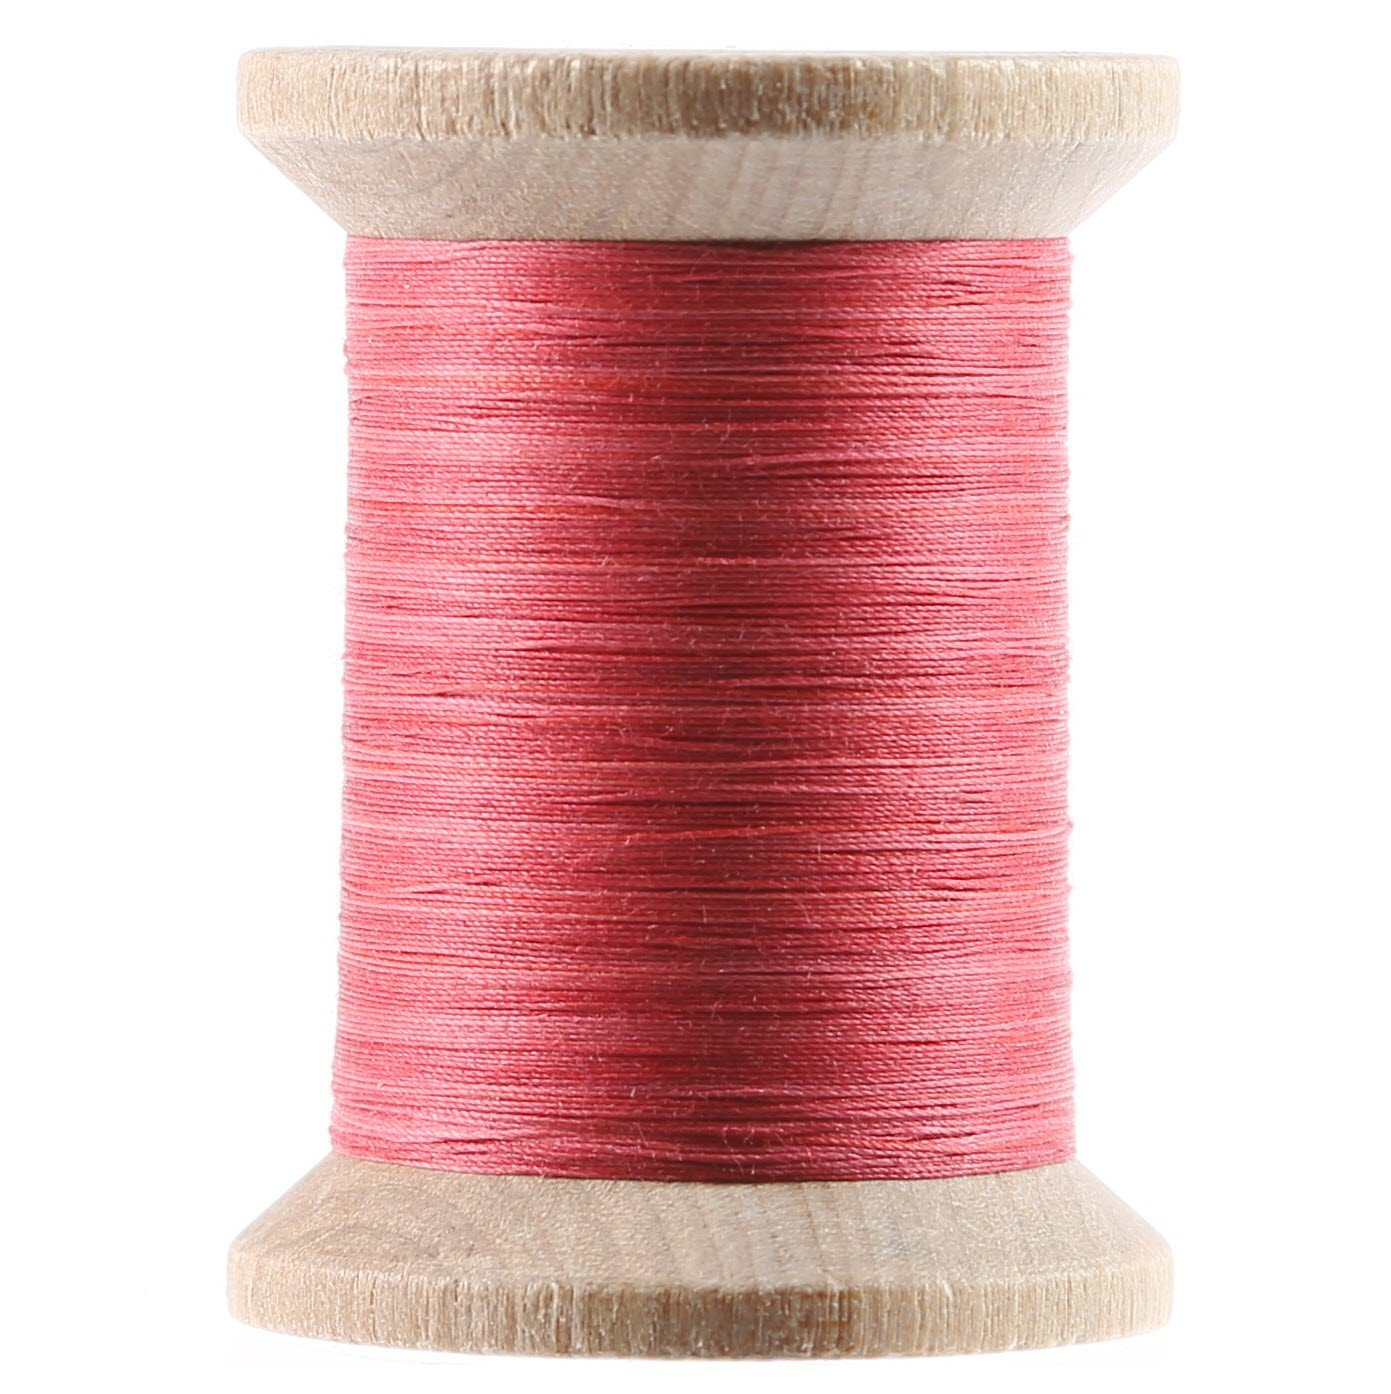 Variegated Cotton Hand Quilting Thread 400yds Reds